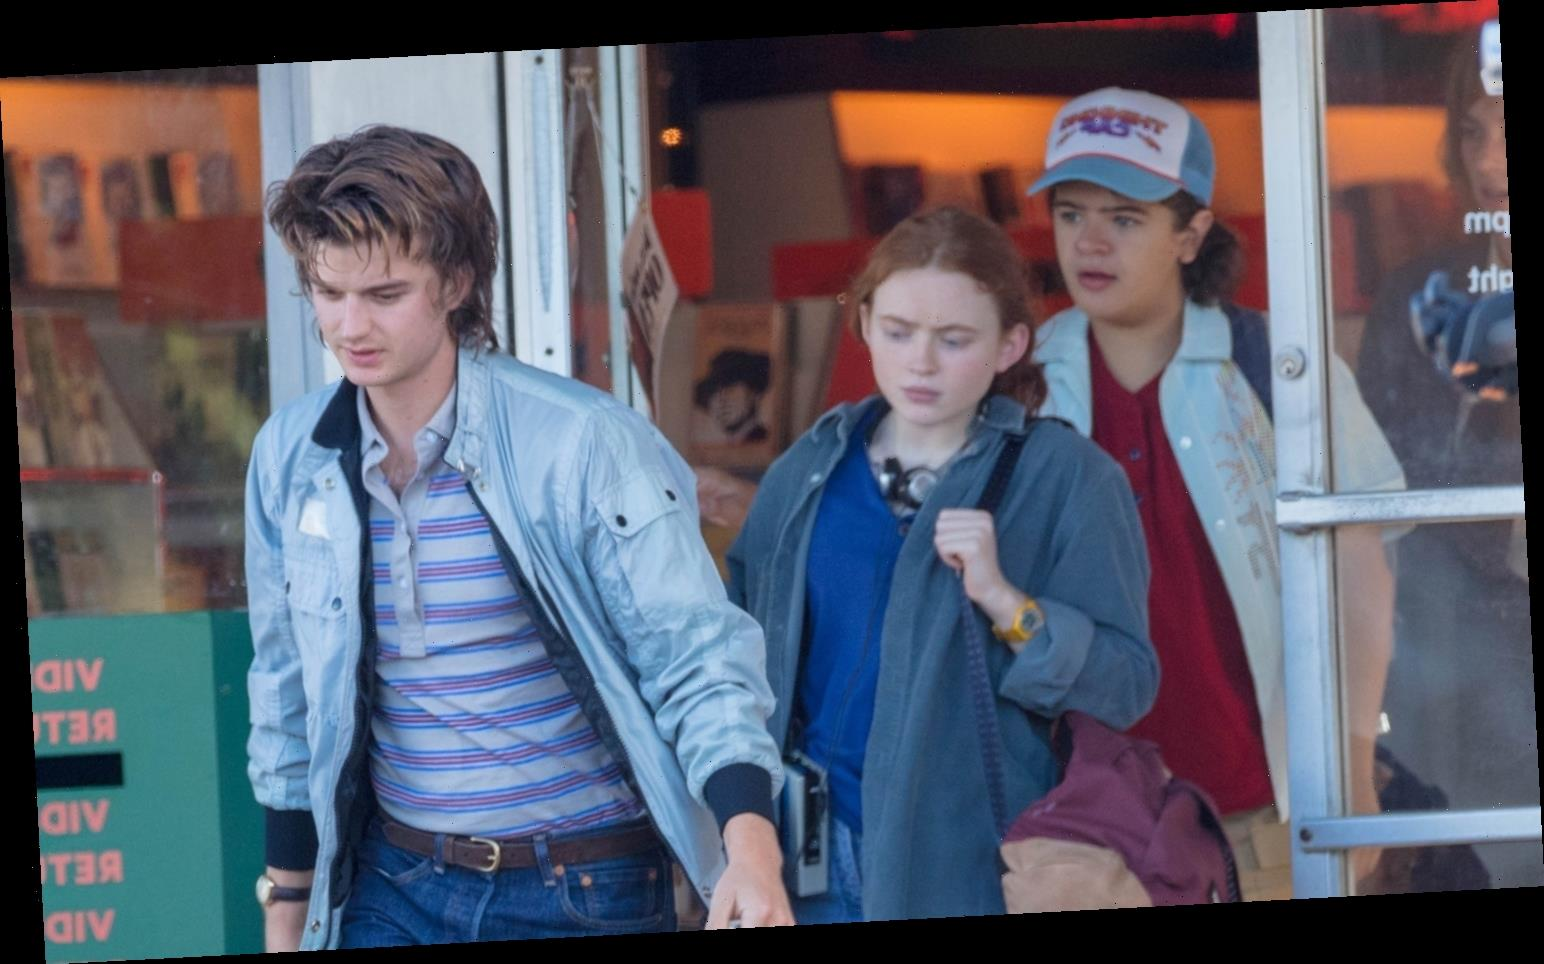 'Stranger Things' Stars Film a Scene at a Video Store – See Photos!